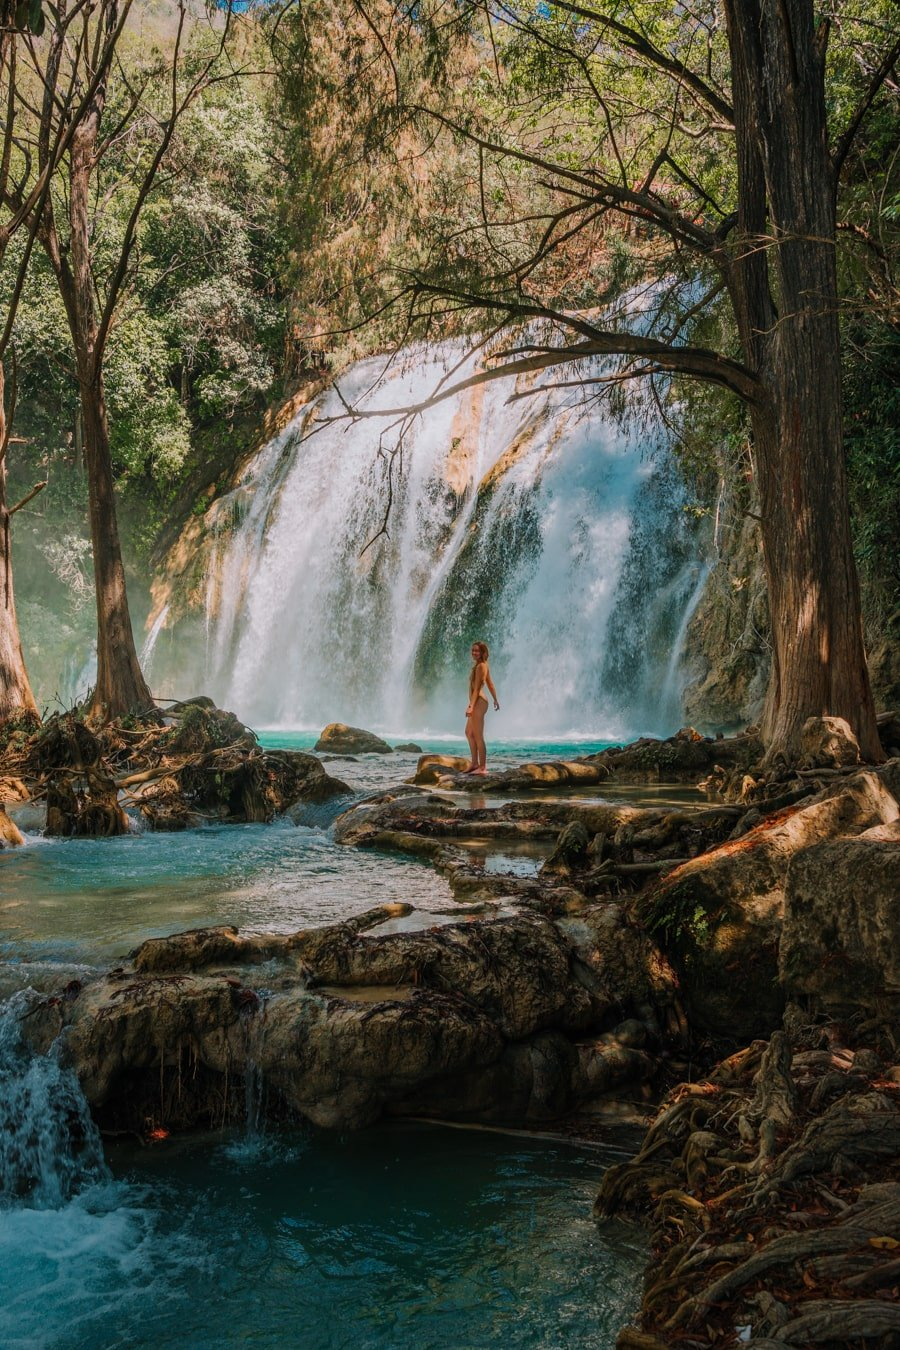 girl standing in Cascada Ala de Angel in El Chiflon in Chiapas Mexico